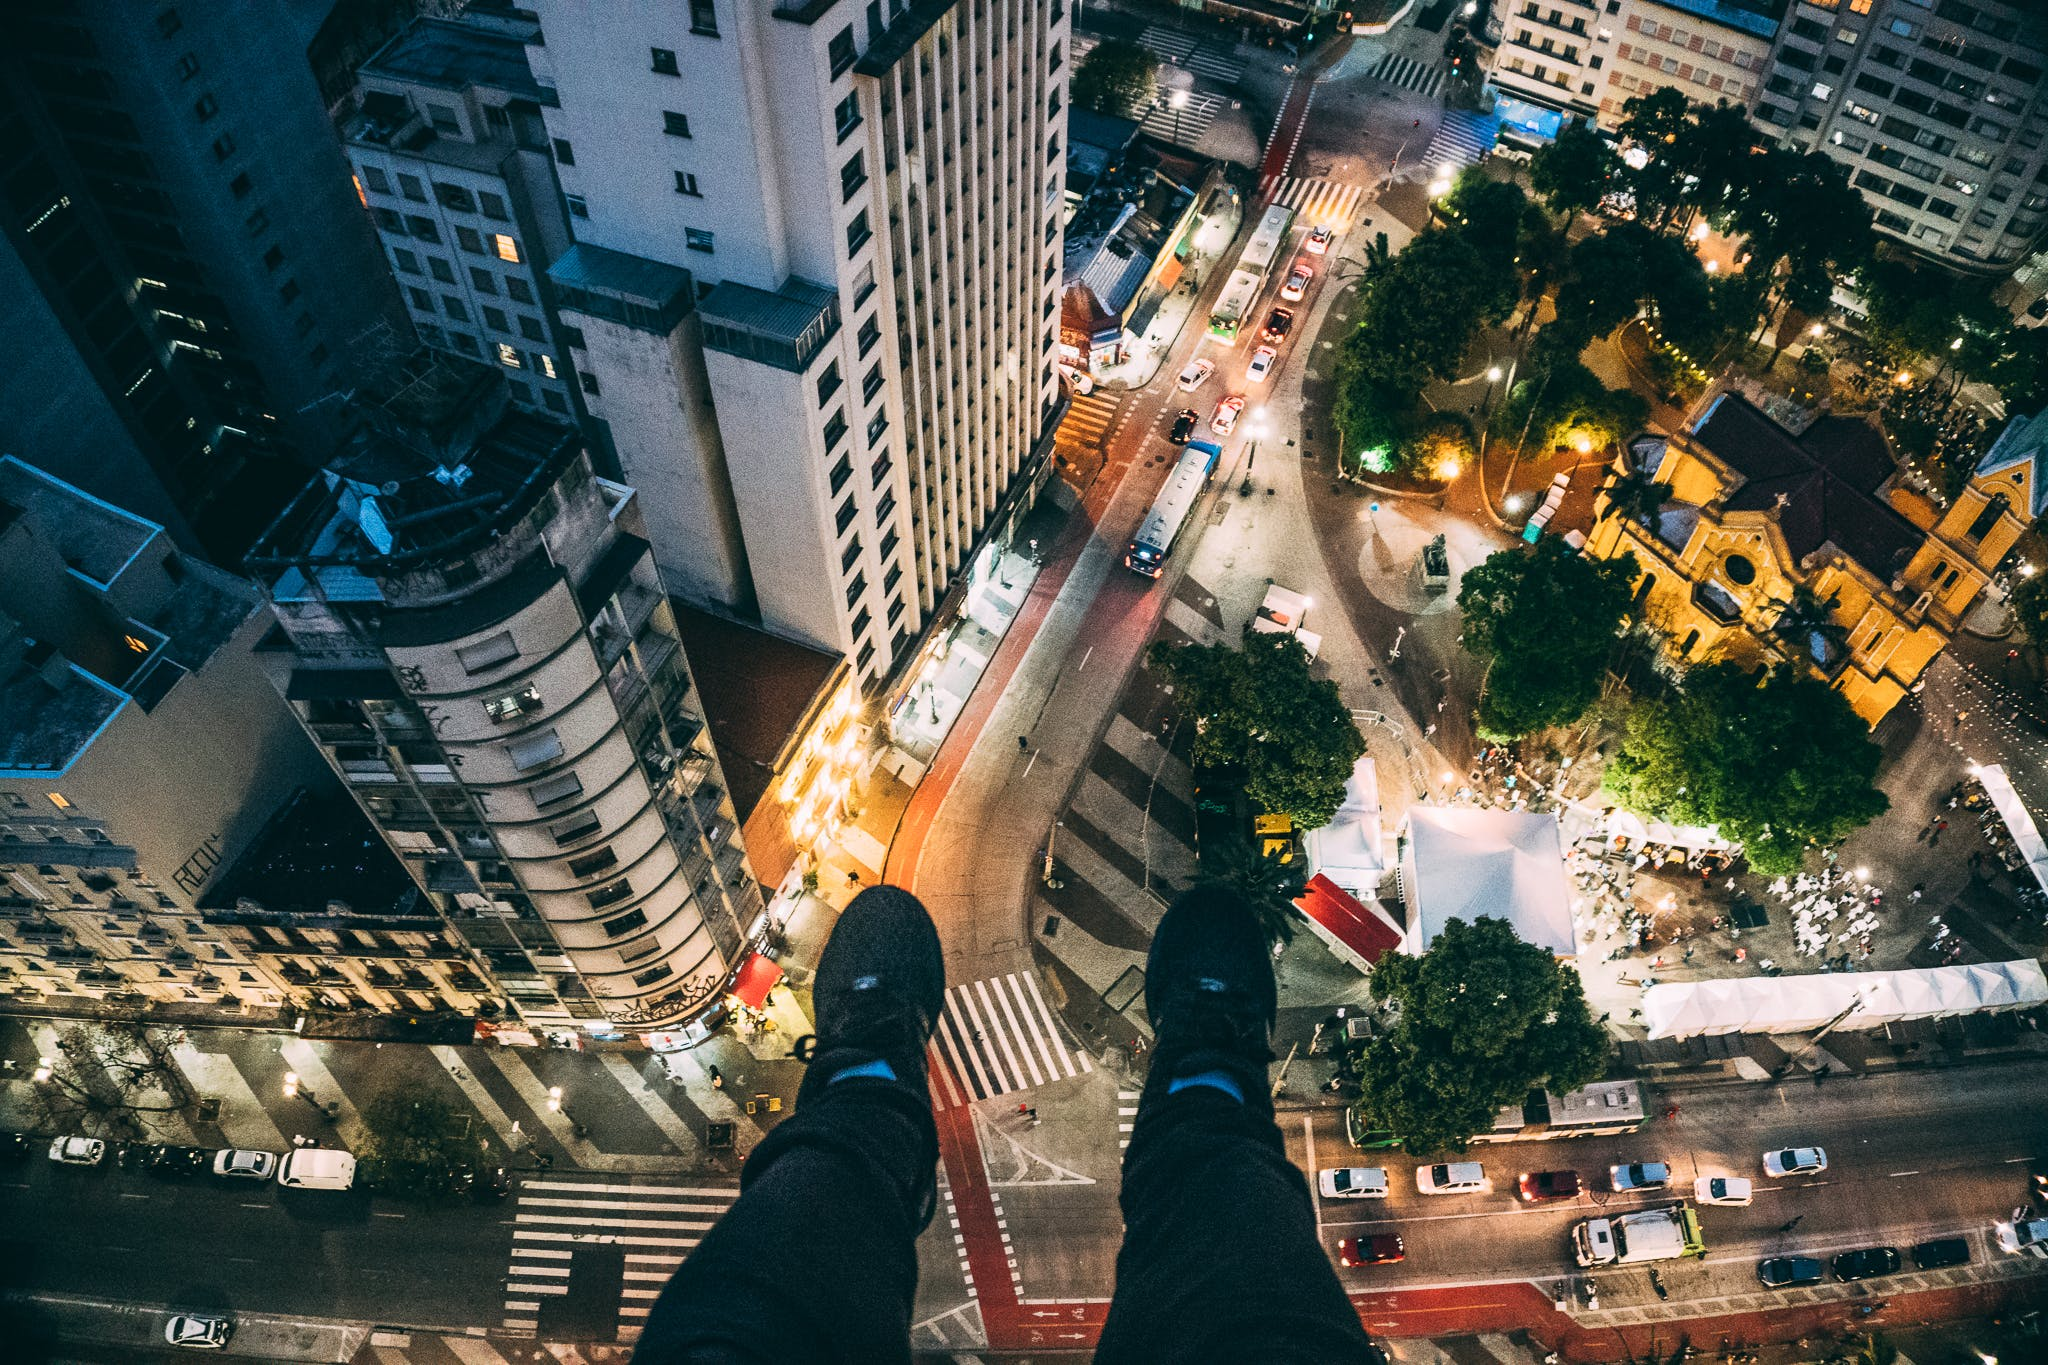 Man Sitting on High Rise Building Taking Photo Below